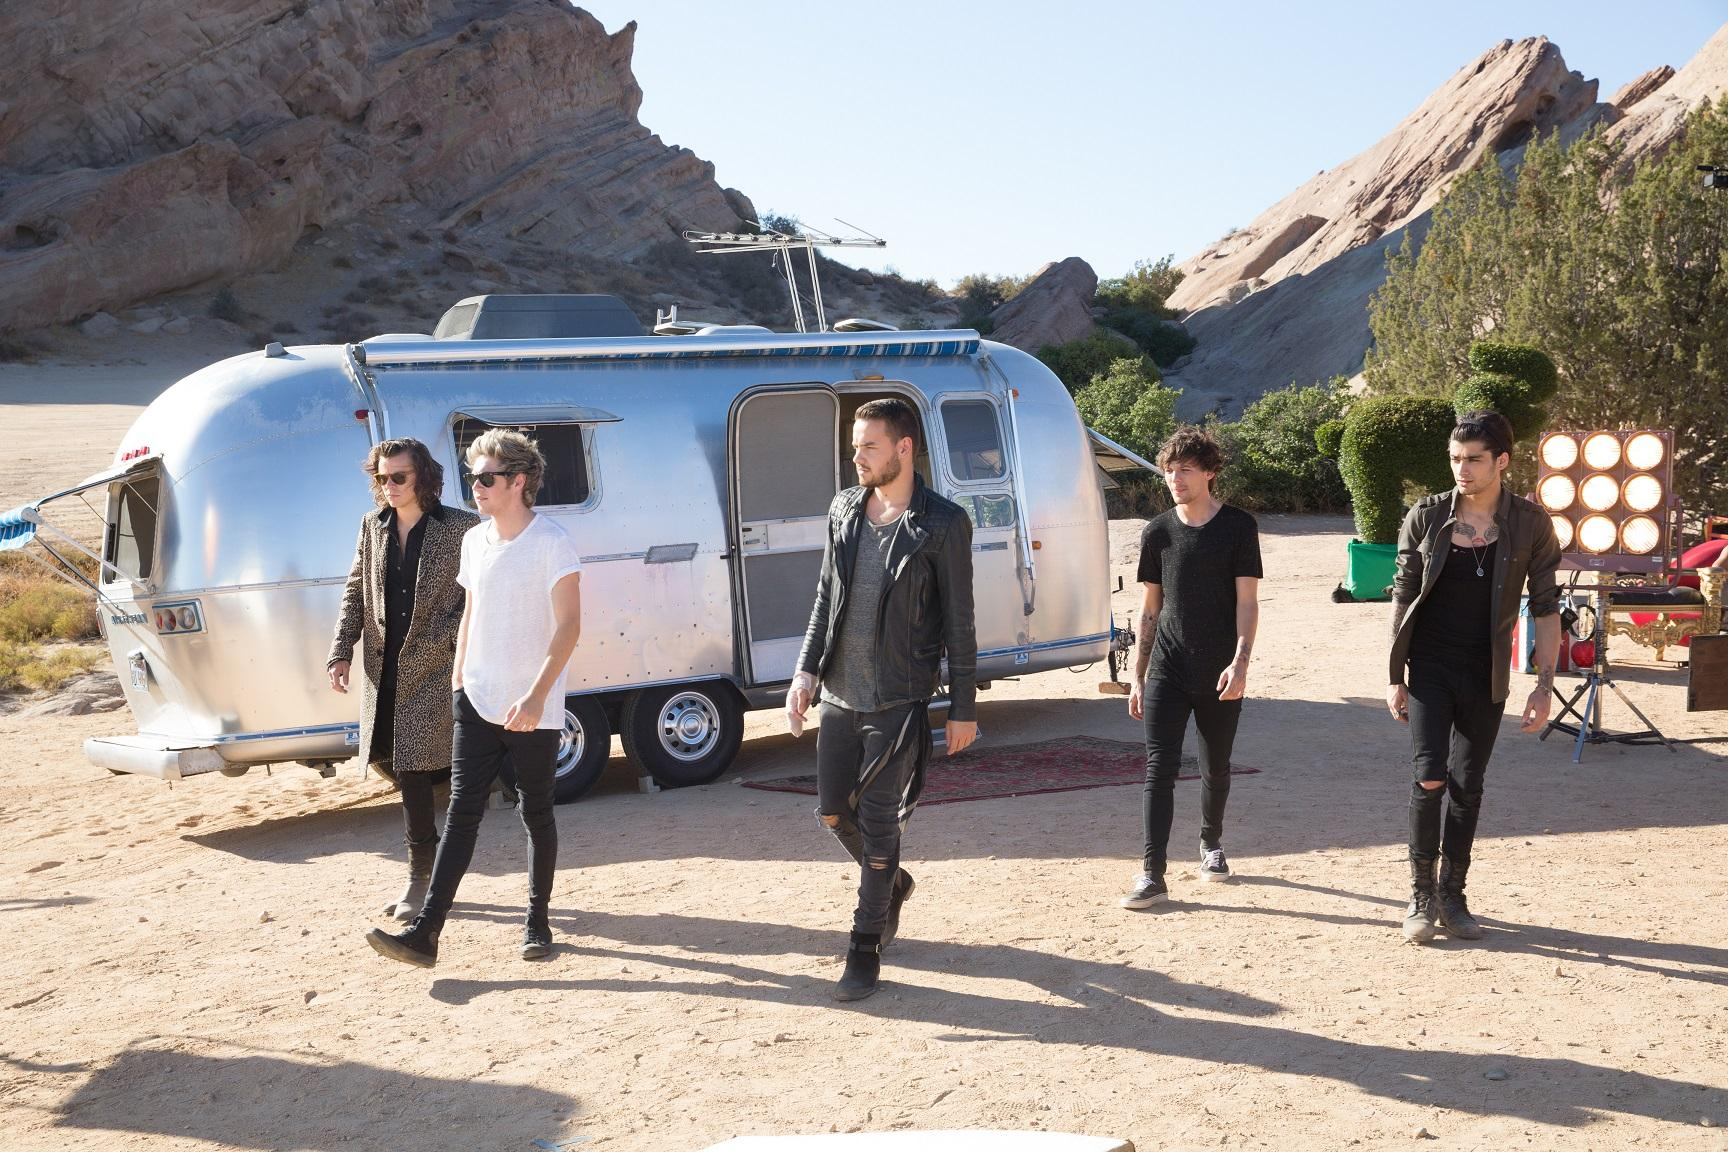 24 hours is up. You guys are incredible. Now we've gotta wait for those official figures #StealMyGirlVEVORecord http://t.co/l08sGdhiYm